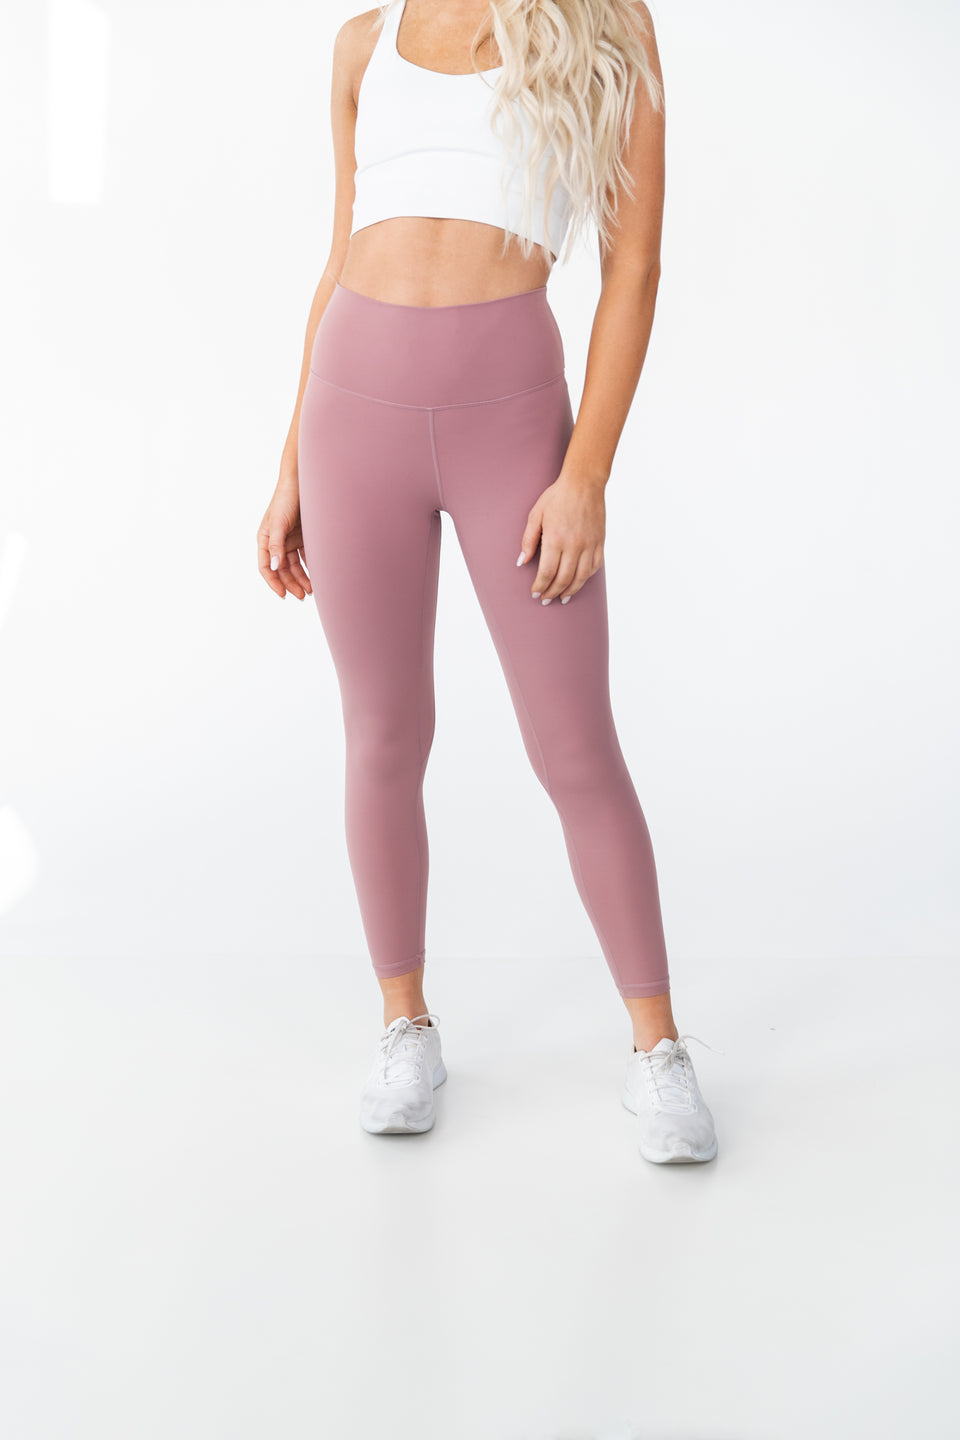 LEGACY ii LEGGINGS - PEACH